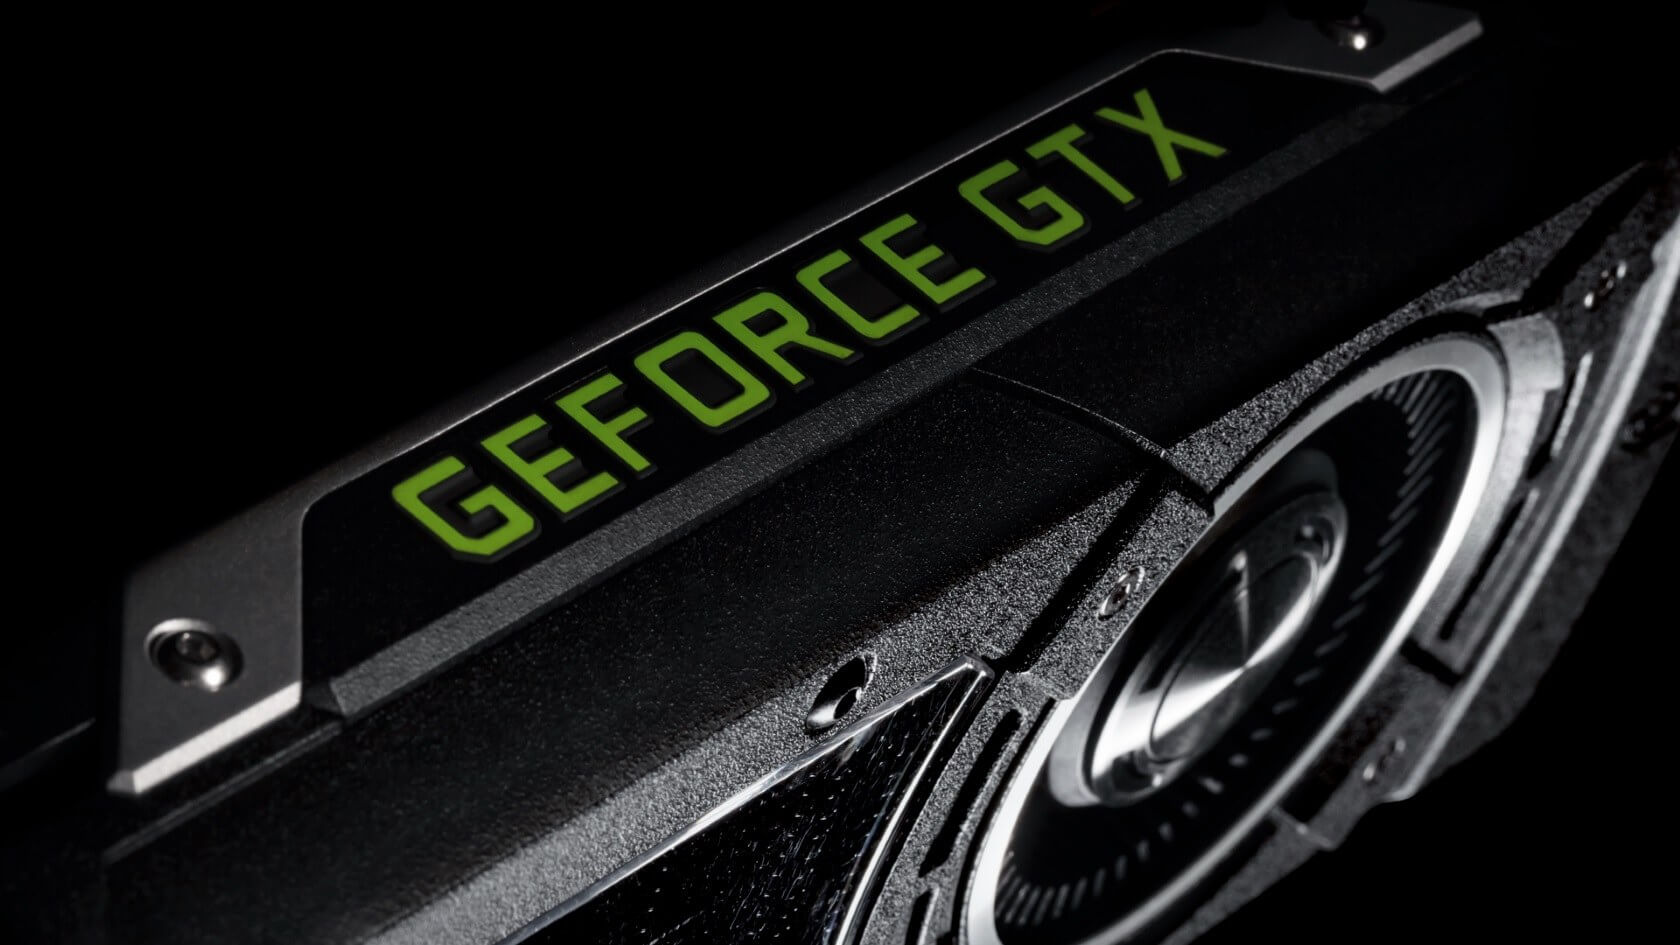 Rumors suggest Nvidia could be working on an RTX-free GeForce GTX 1660 Ti